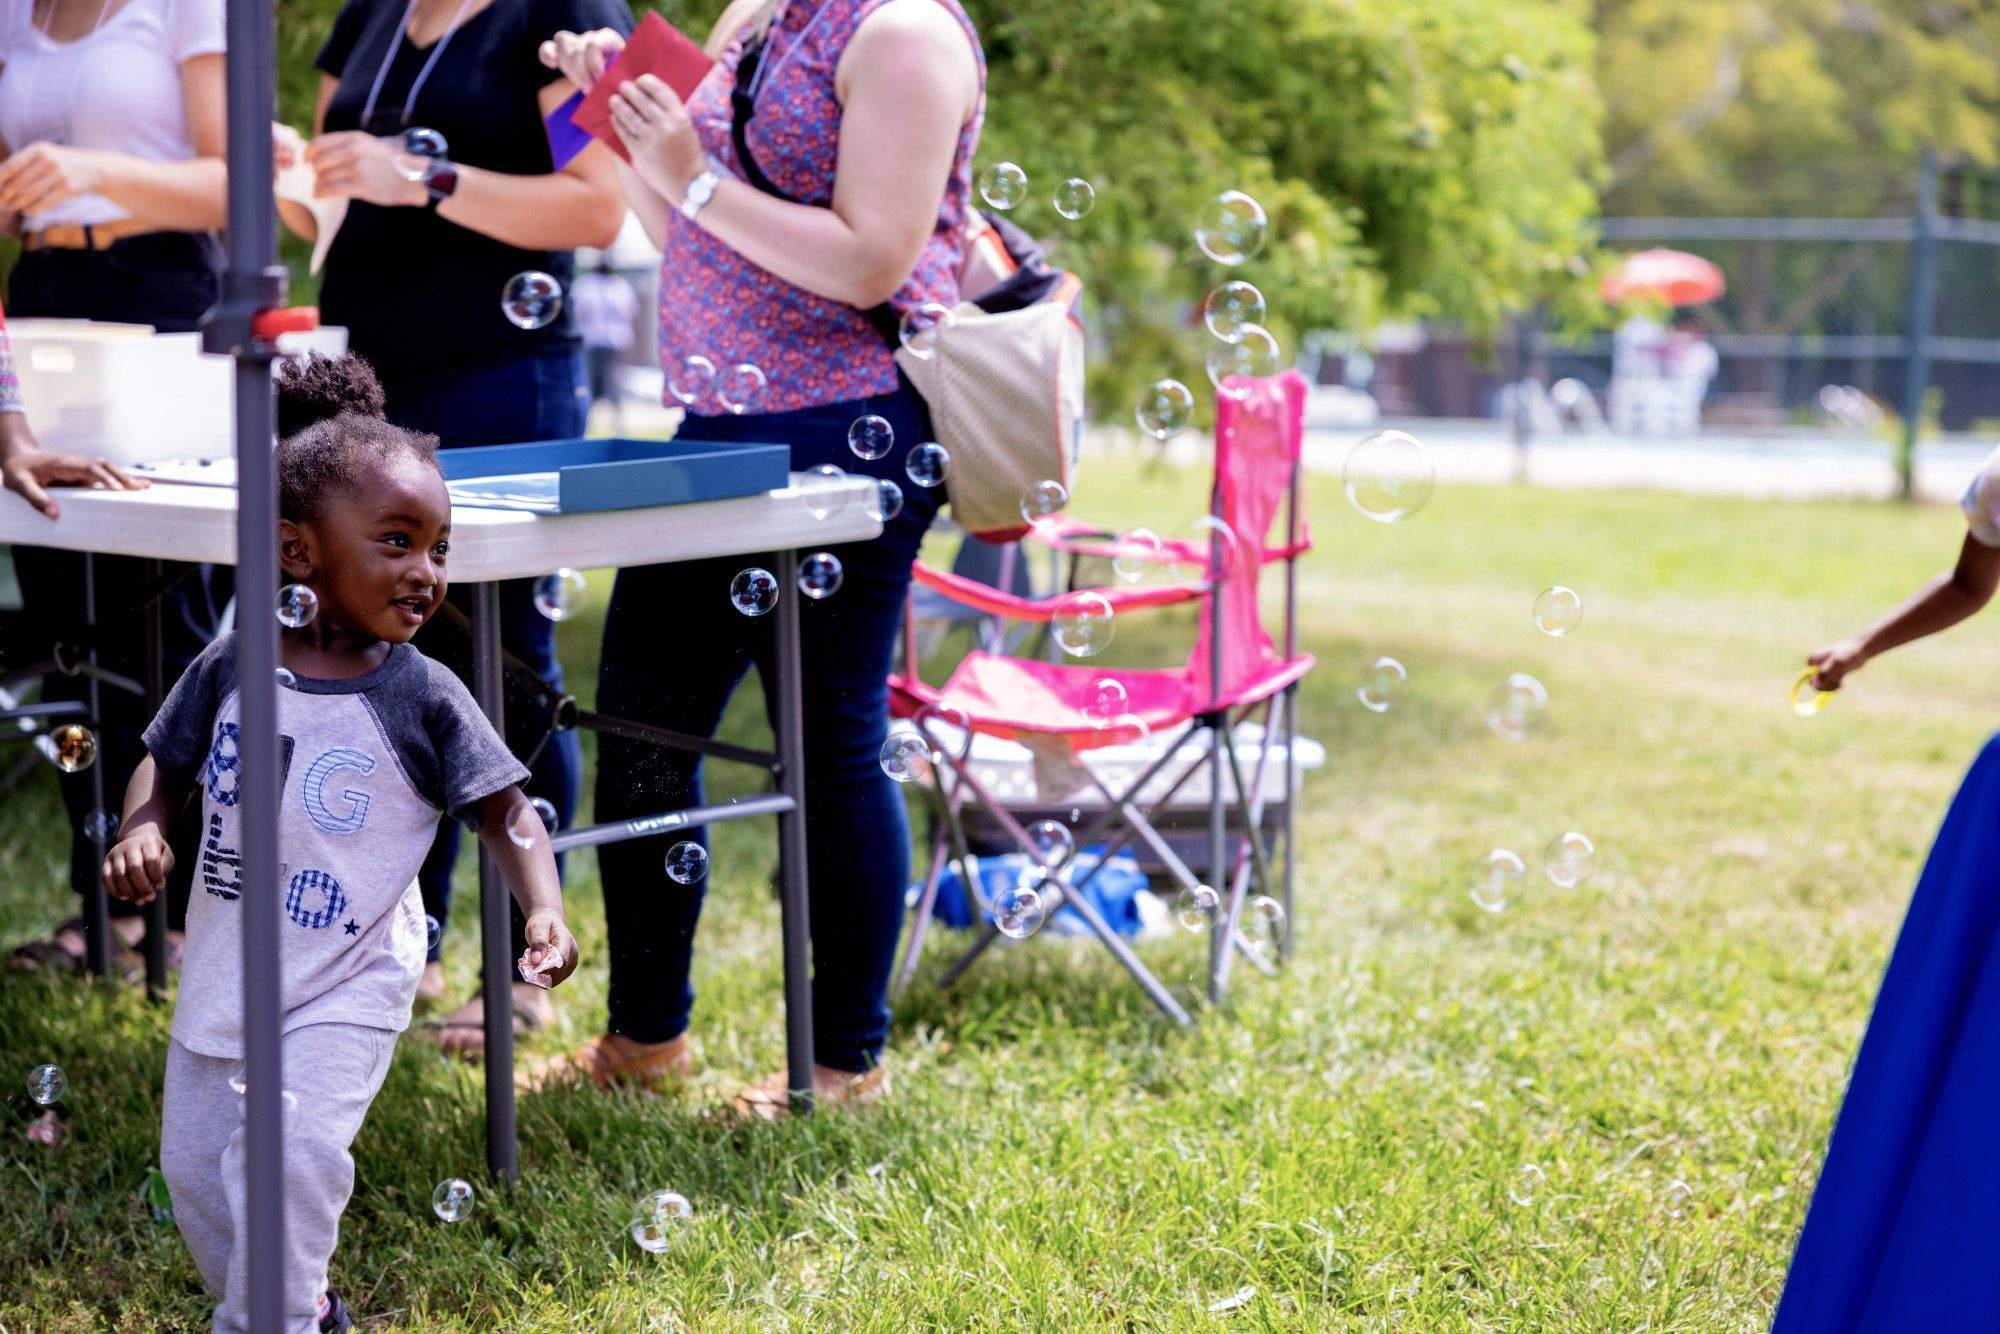 A child playing with bubbles at Marquette Community Day in Dutchtown, St. Louis, MO.